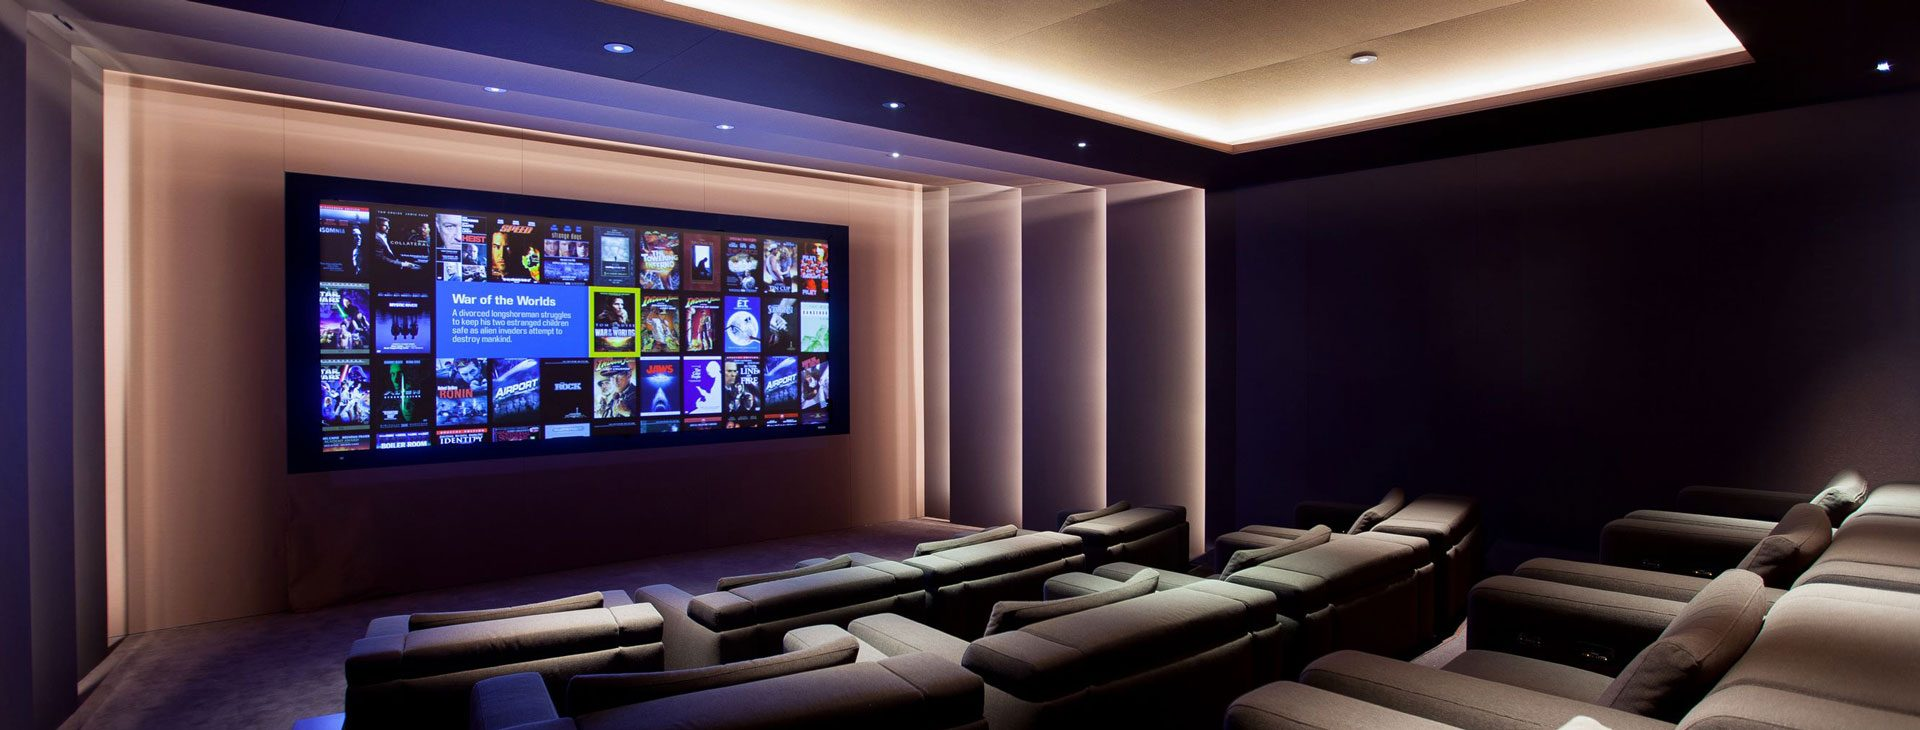 HOME-CINEMA-Header-2-1920x730.jpg